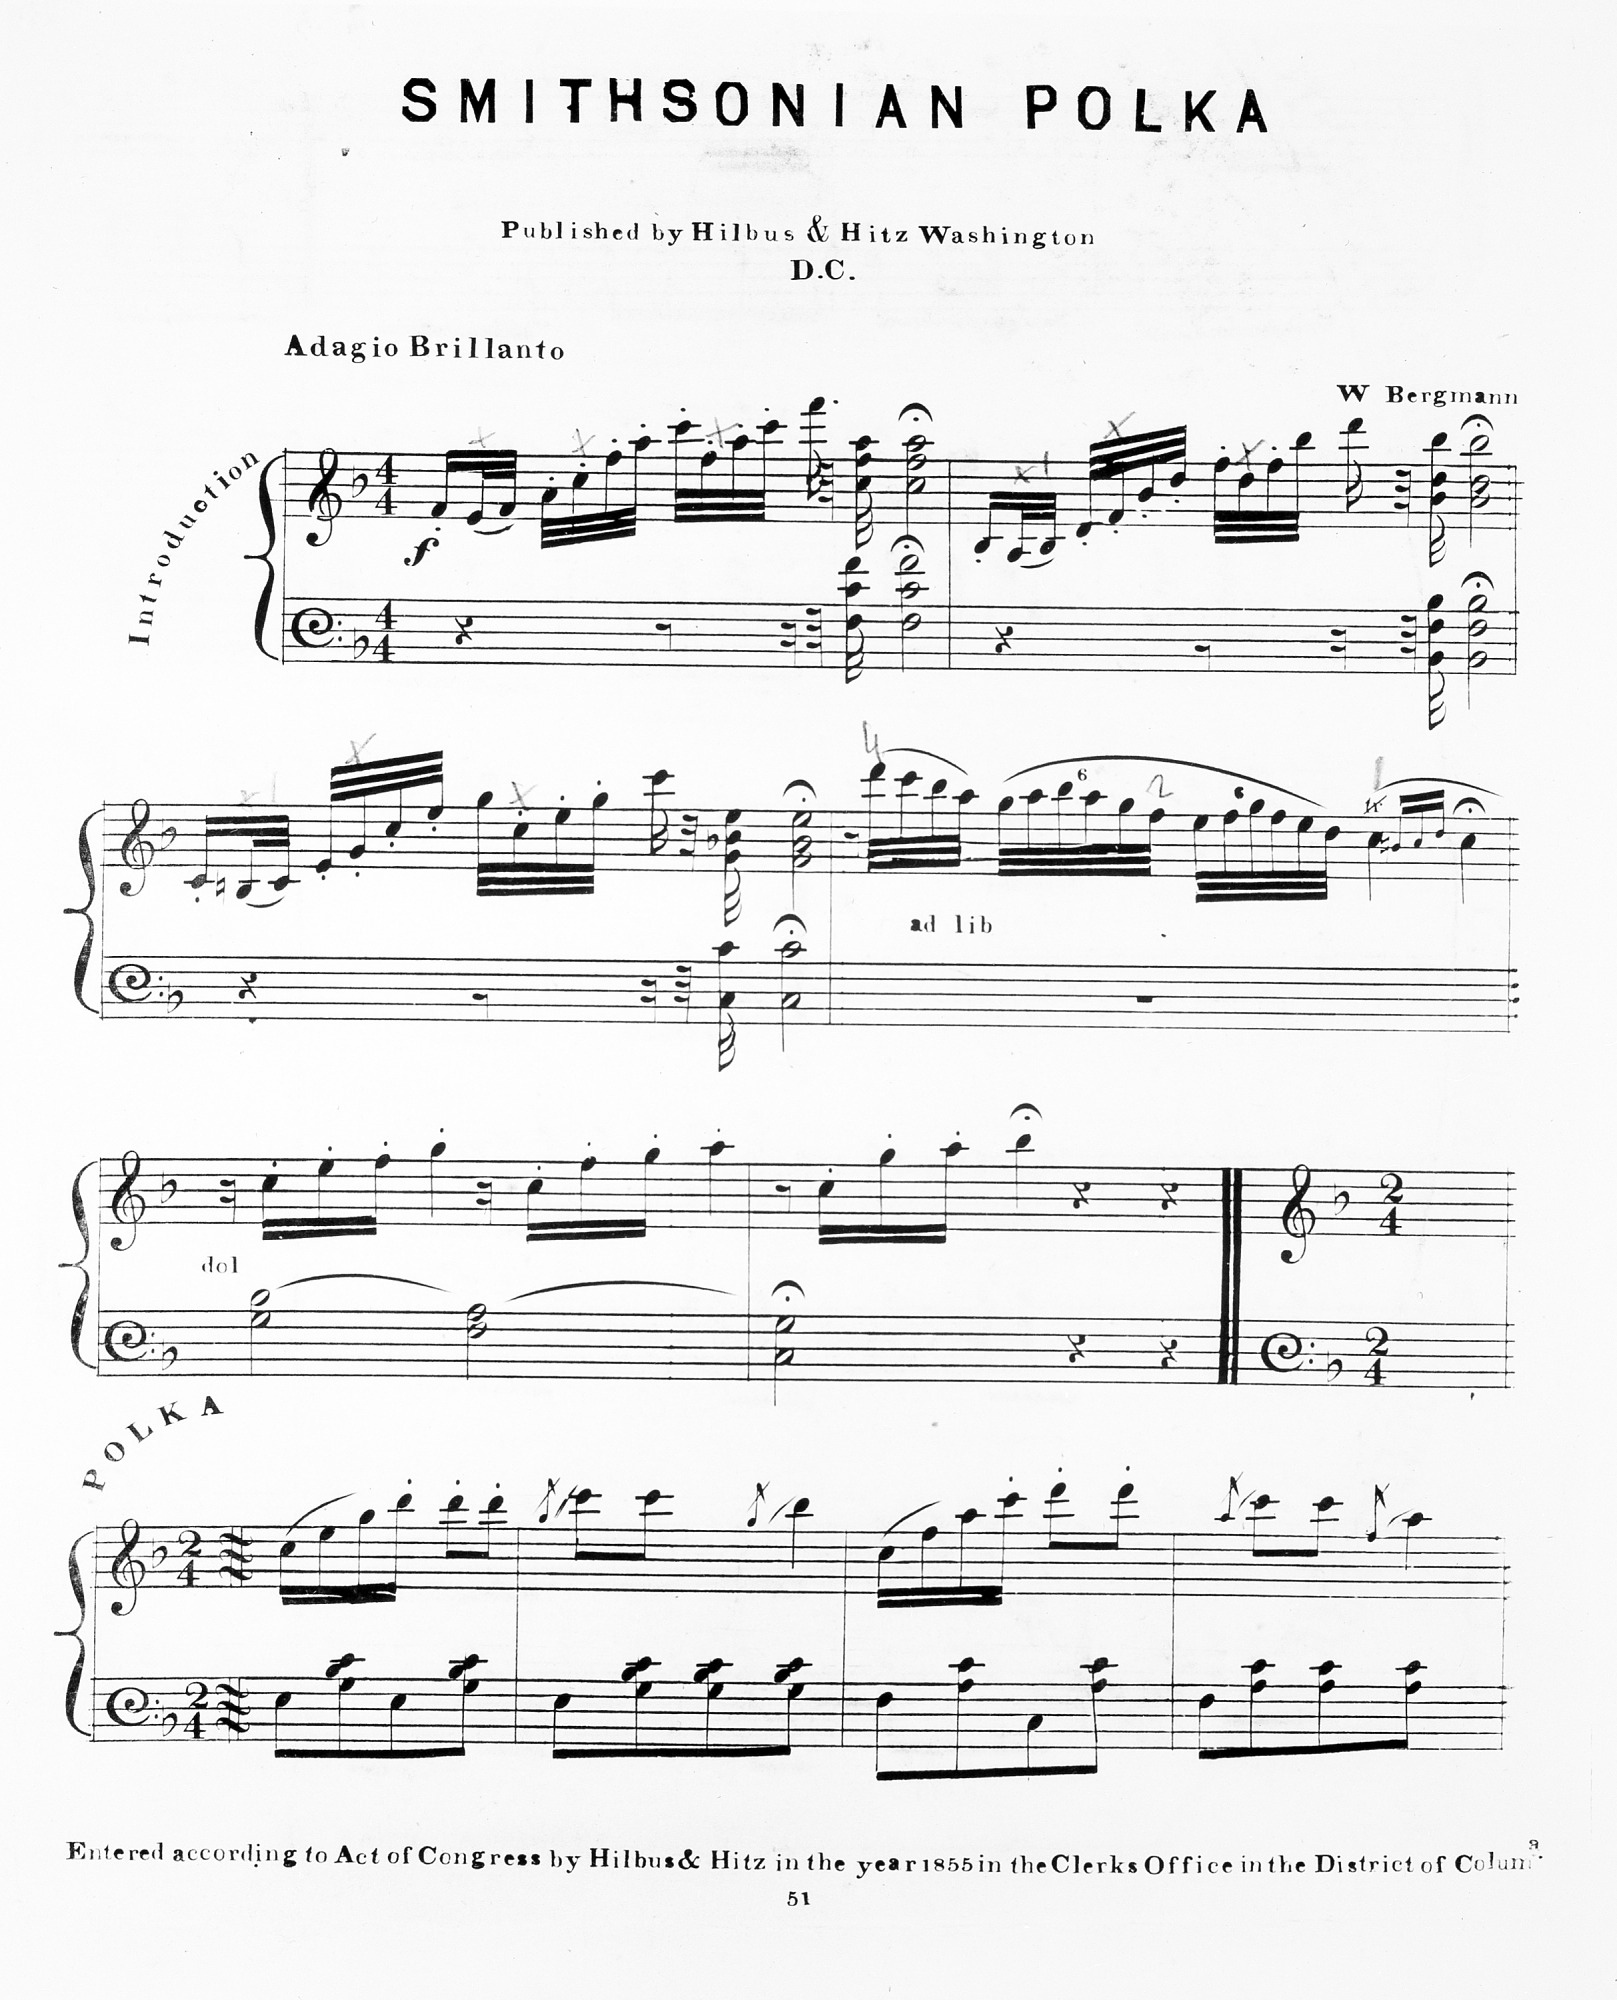 images for Music for Smithsonian Polka by W. Bergman